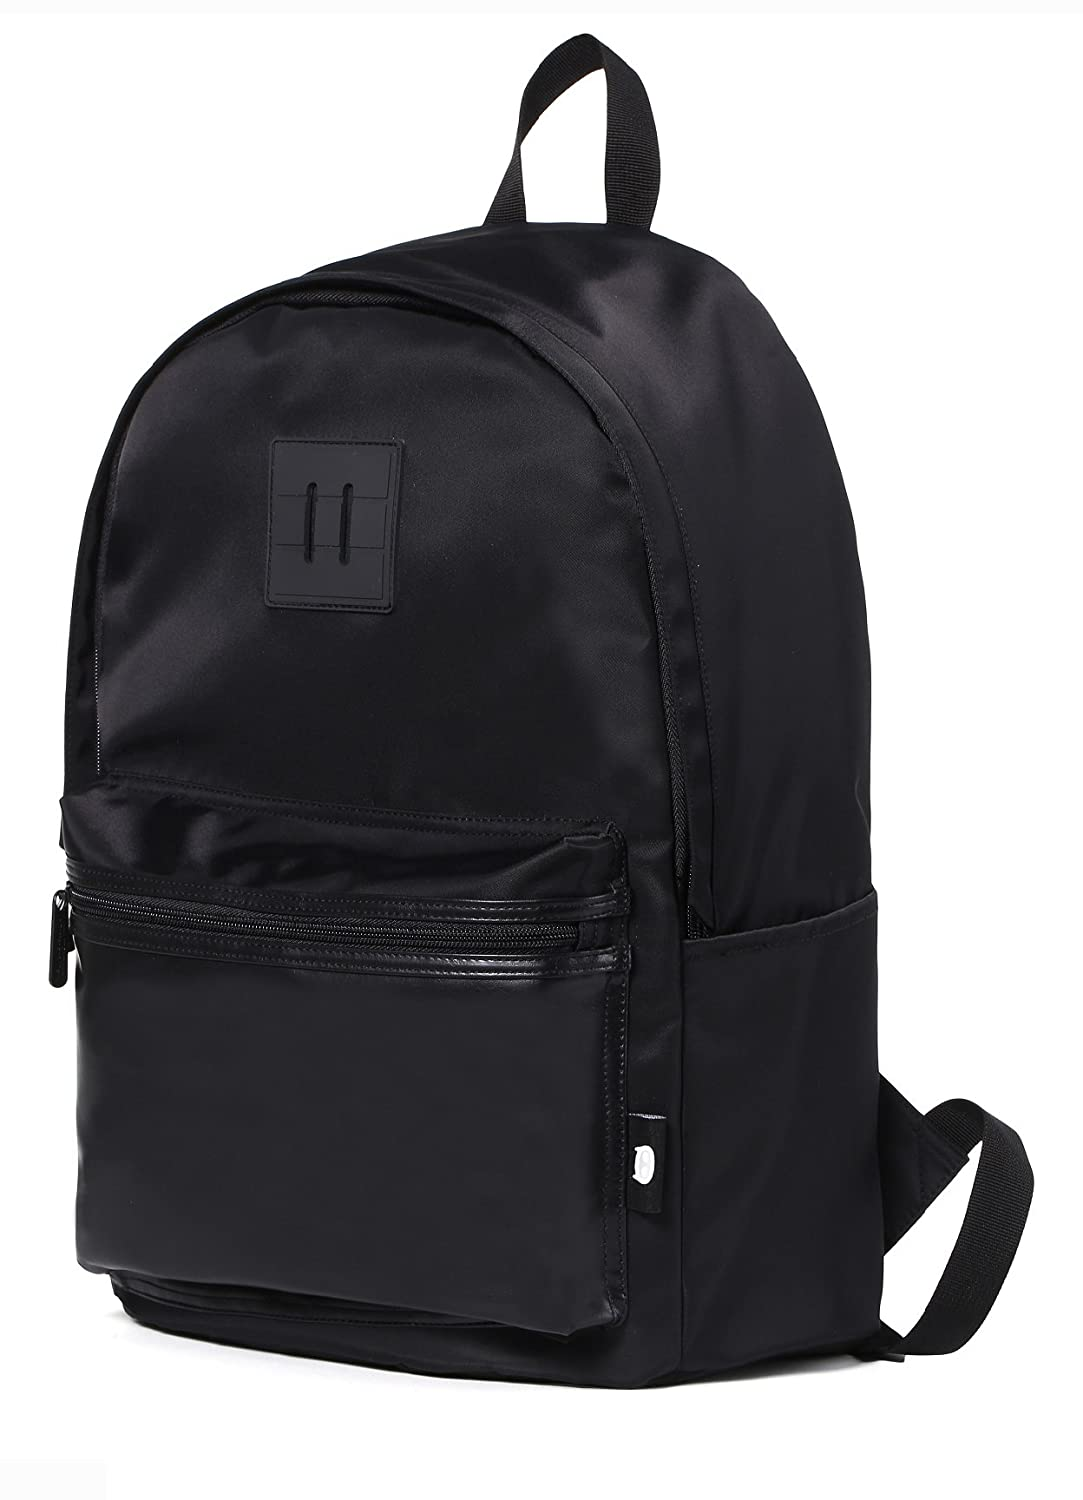 ... Teen Boys and Girls Black best. SEMIR Waterproof Nylon Designer Fashion Lightweight  Backpack Bag Pack College School Book Bag for School Women 4bf212e4972e4